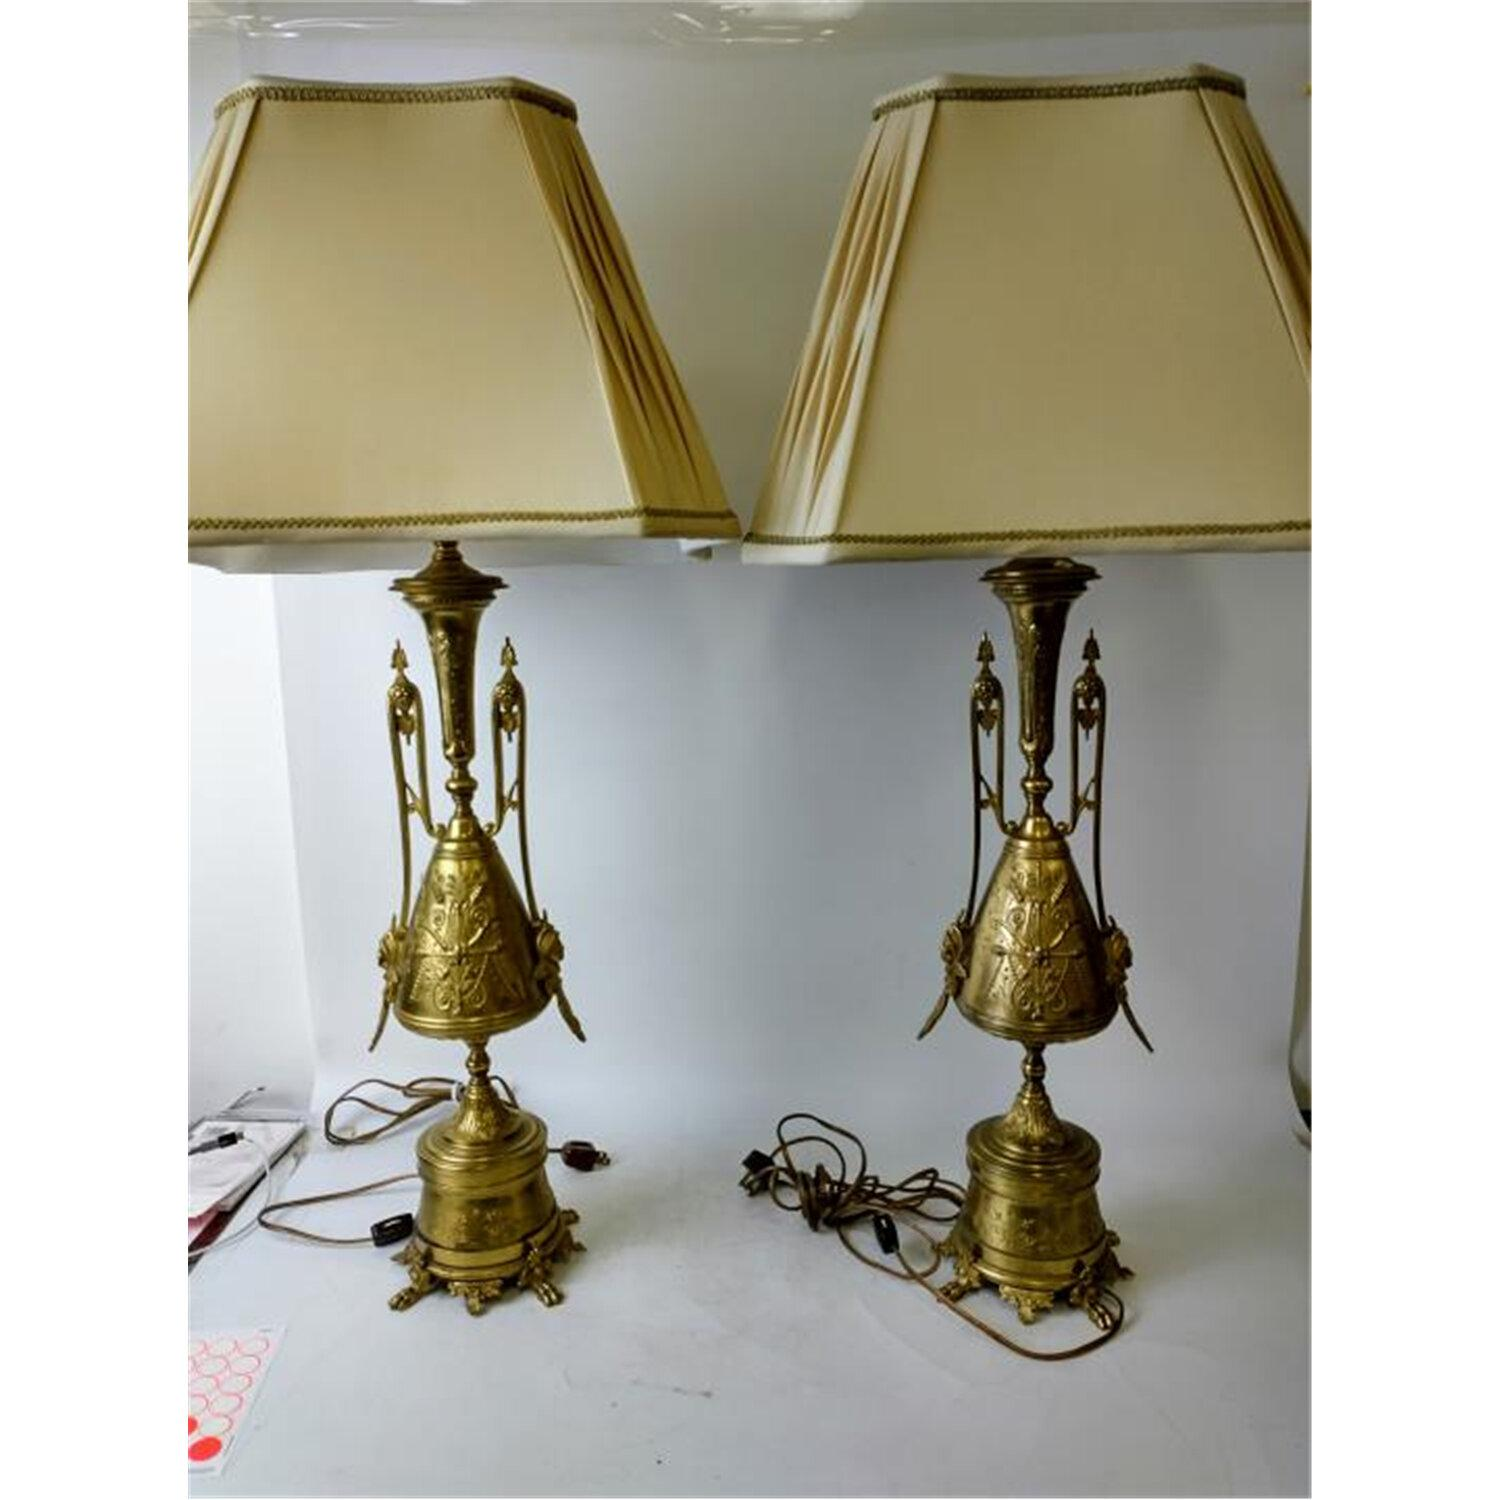 Pair of Antique Egyptian Revival Bronze Lamps